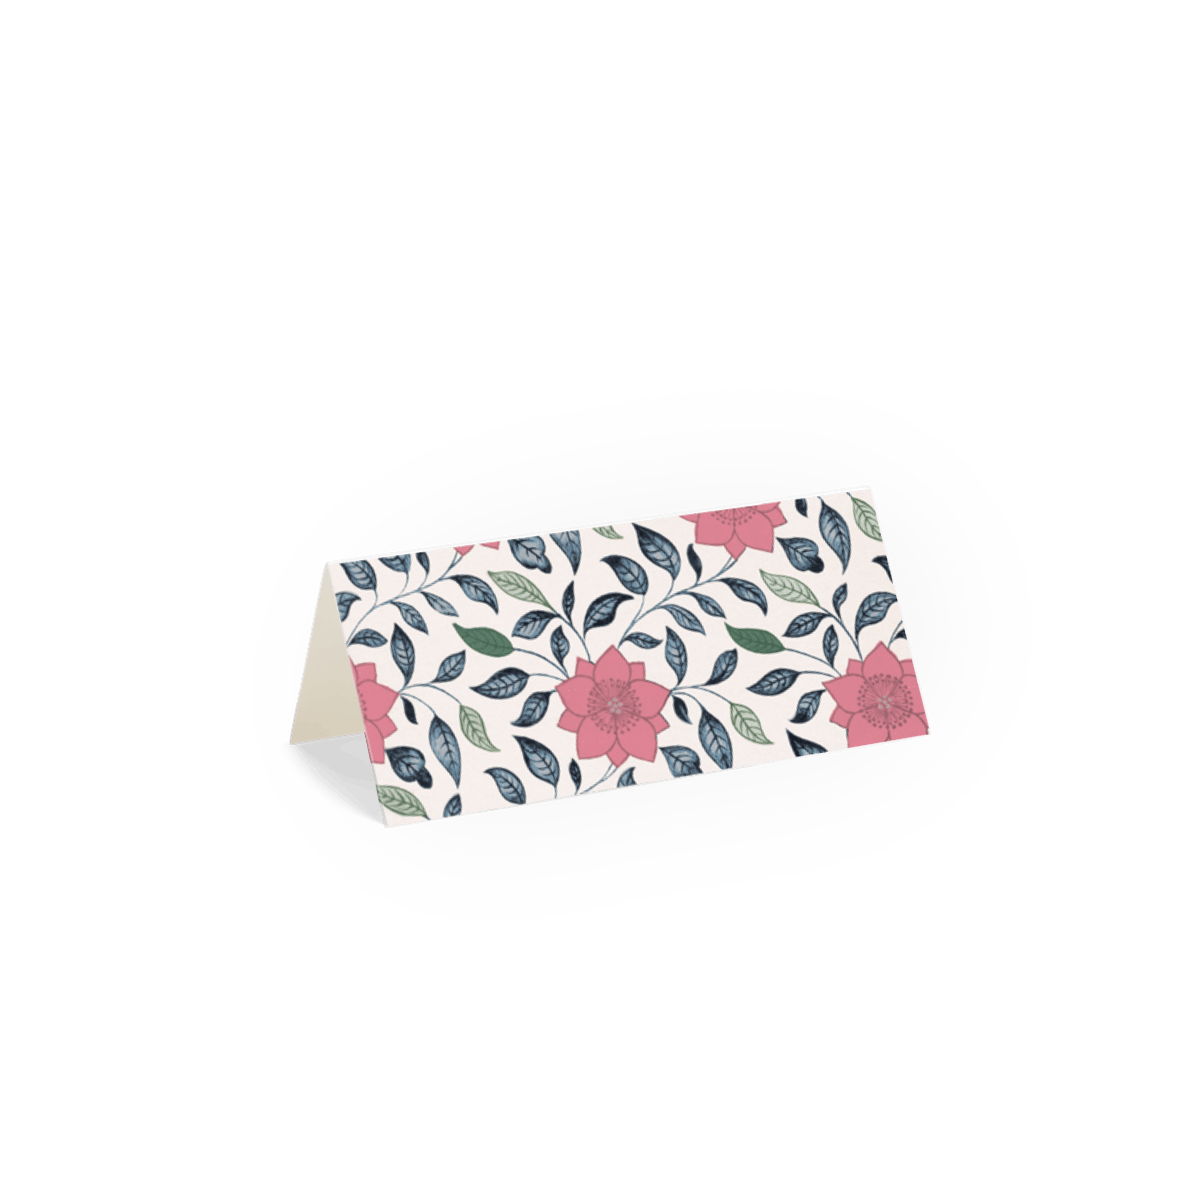 Https%3a%2f%2fwww.papier.com%2fproduct image%2f82527%2f15%2fpink lotus 19976 arriere 1562149333.png?ixlib=rb 1.1